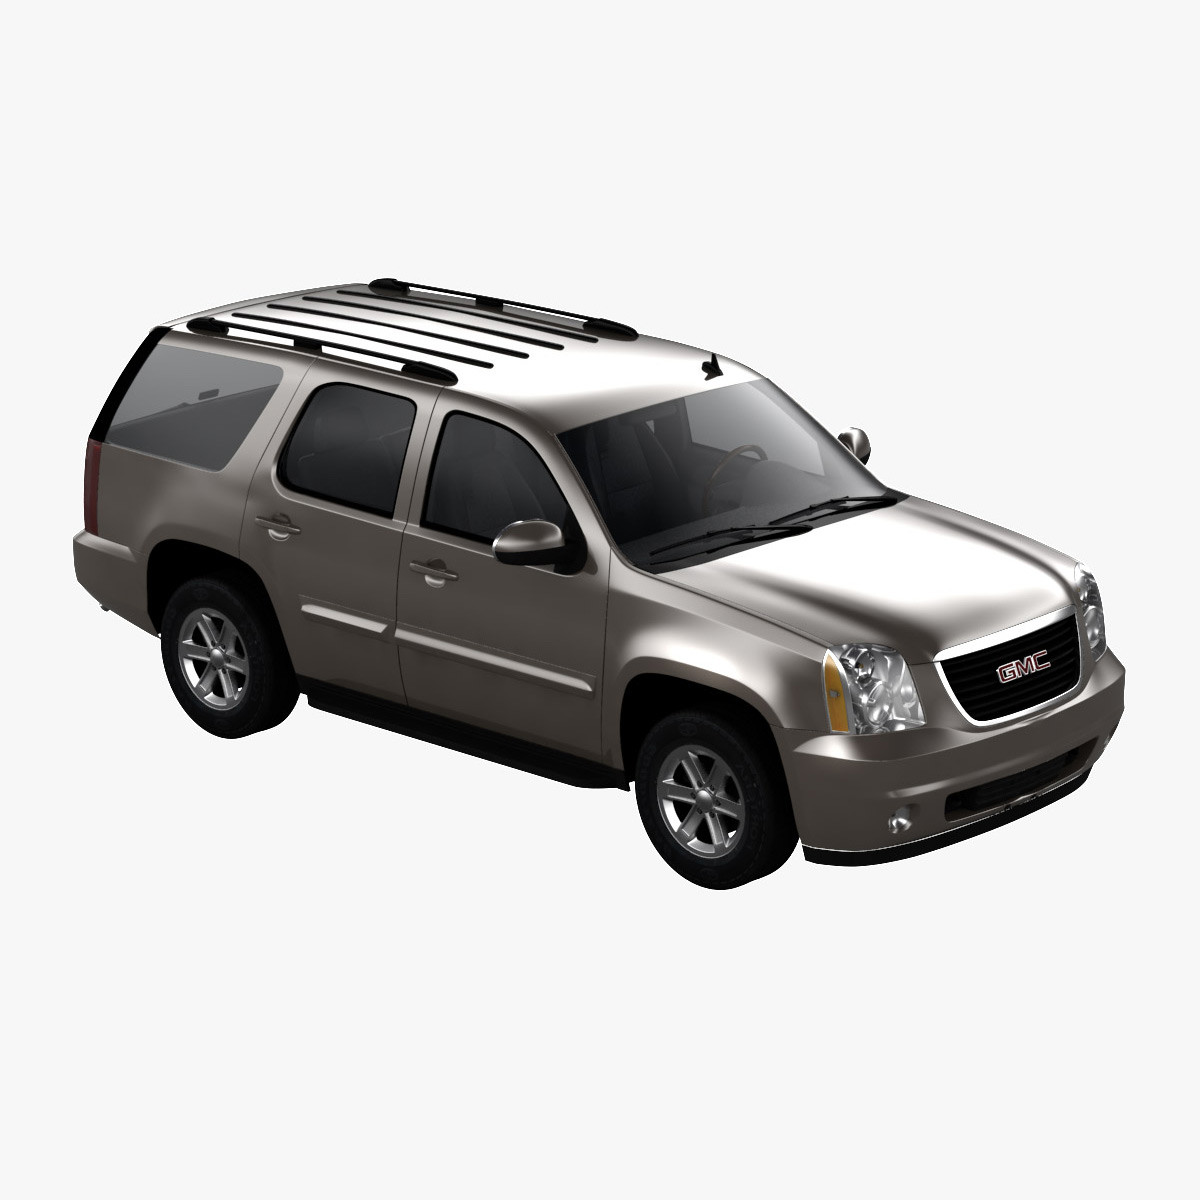 3d model of gmc yukon